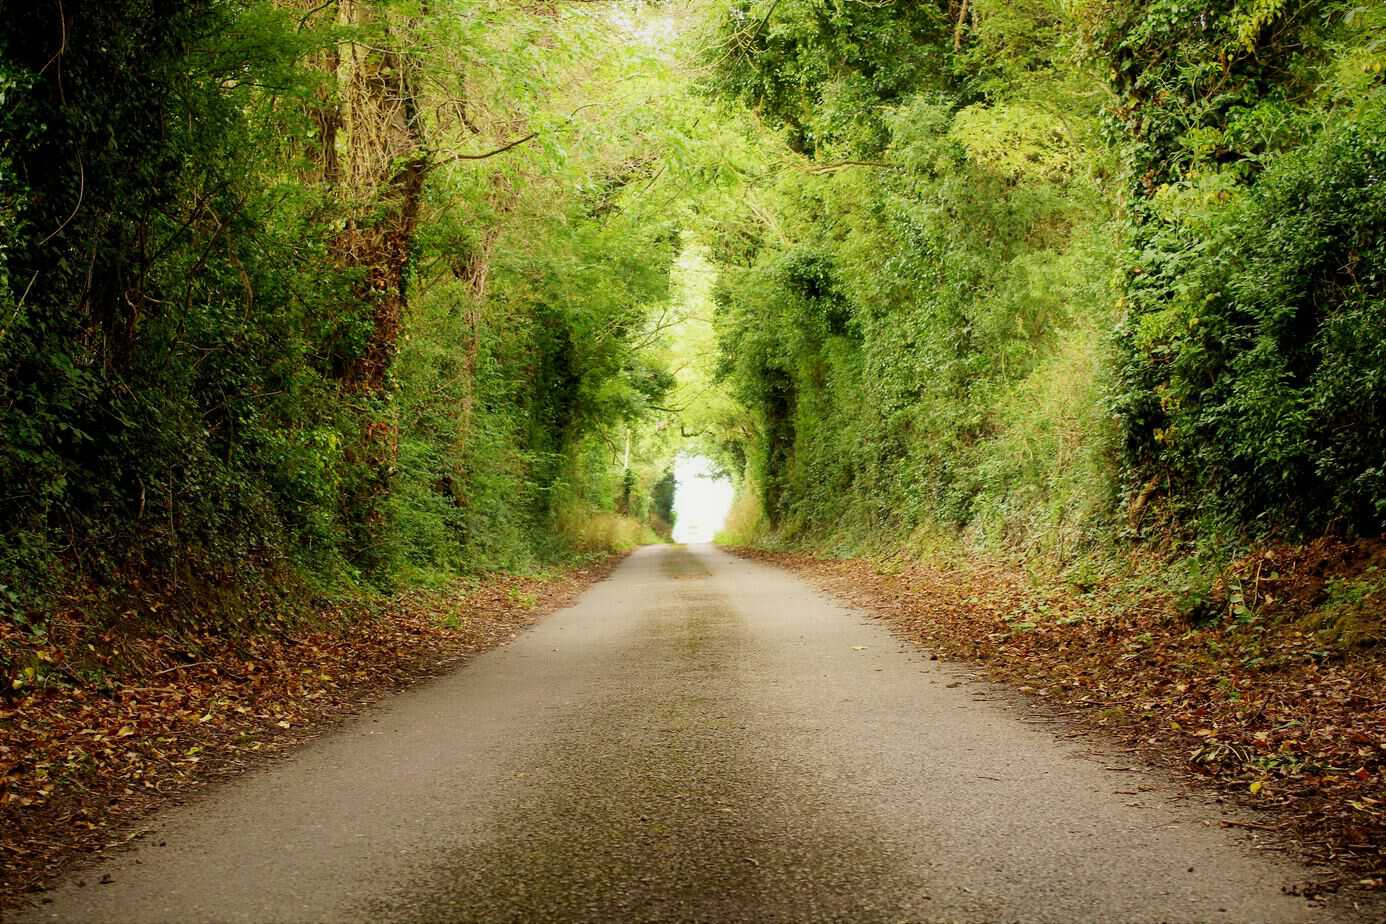 The Gordon Bennett Route, Co Carlow, Co Kildare and Co Laois